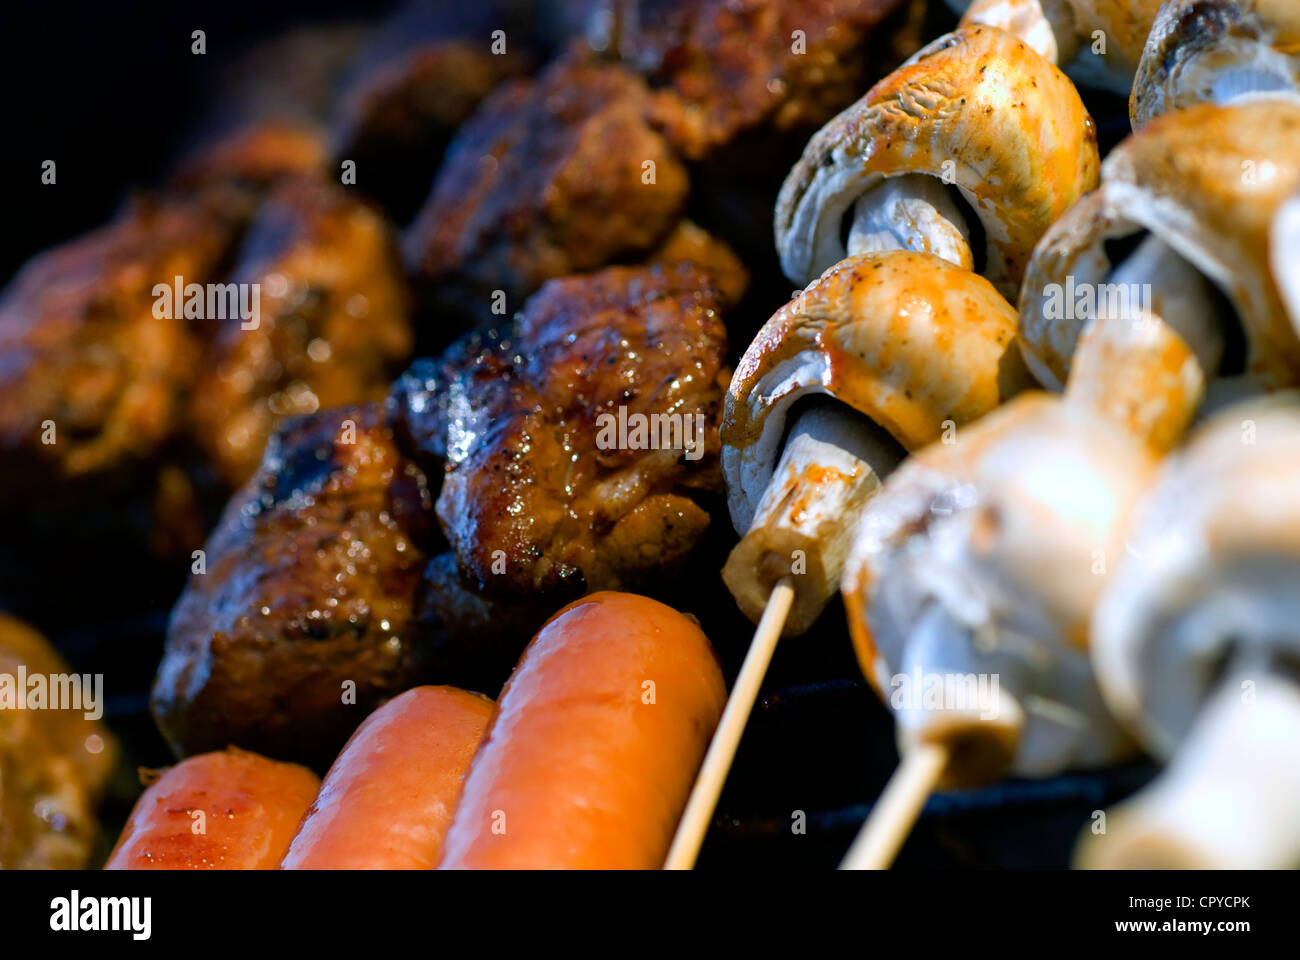 Close-up of different taste sensations on the grid - Stock Image